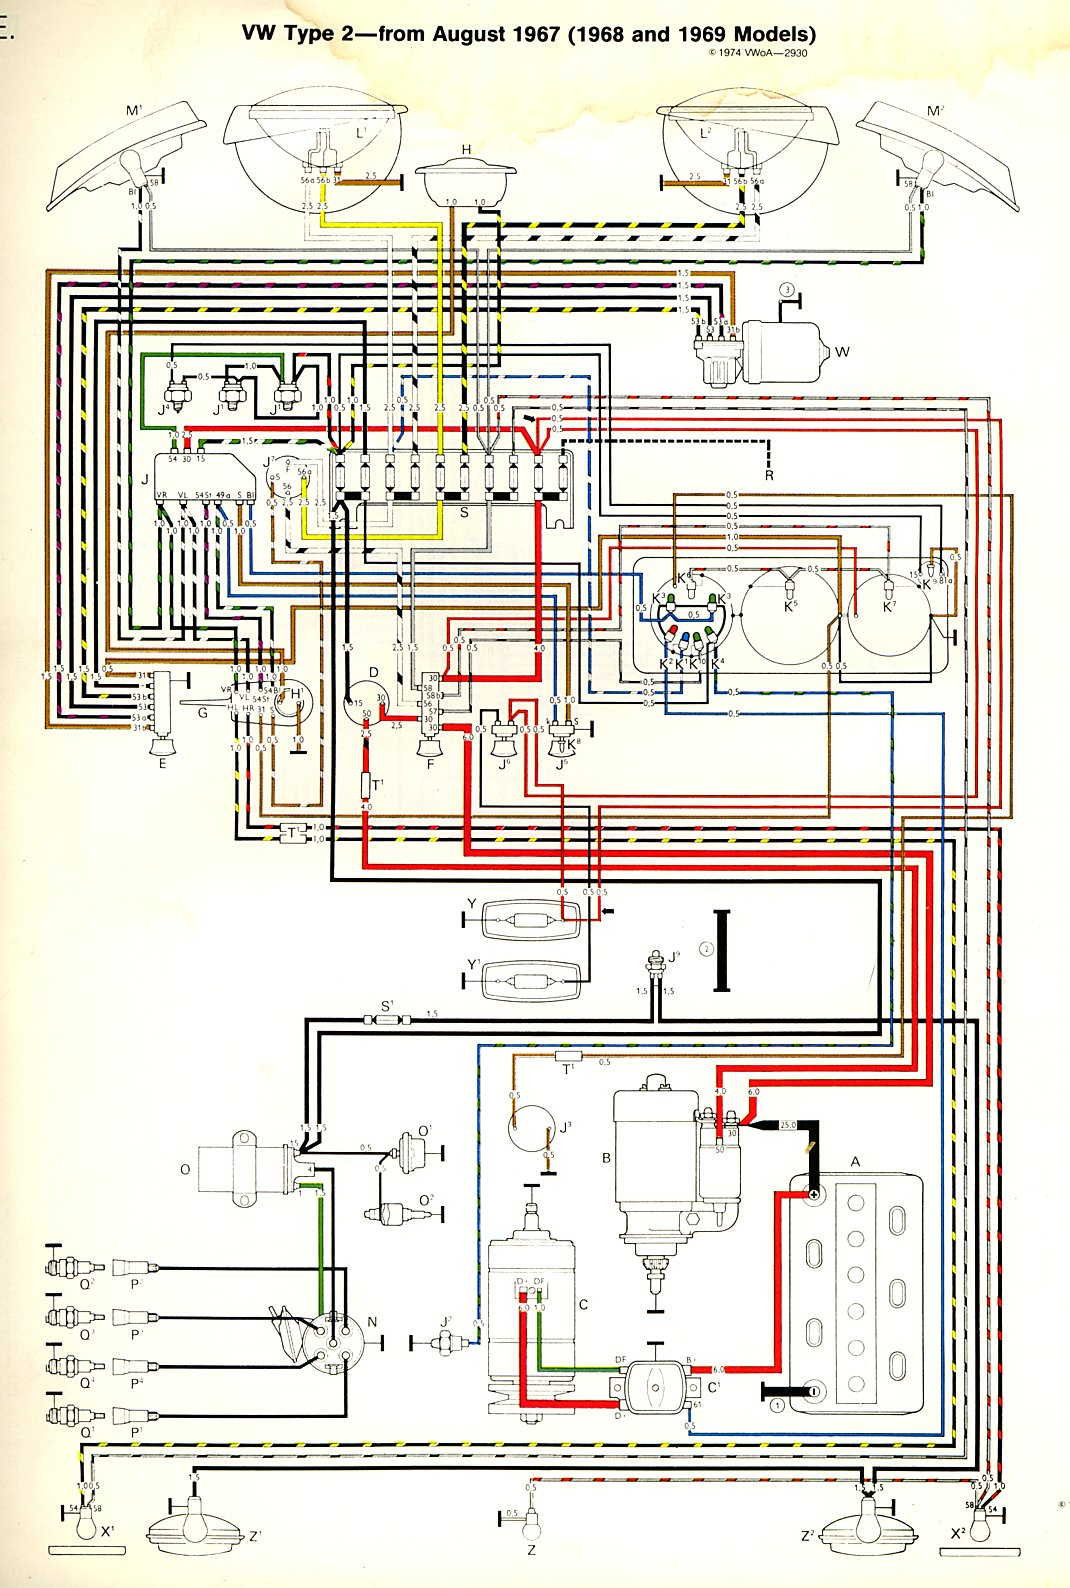 1968 vw bus wiring diagram detailed schematics diagram rh keyplusrubber com Vanagon Fuel Pump Relay Vanagon Fuse Panel